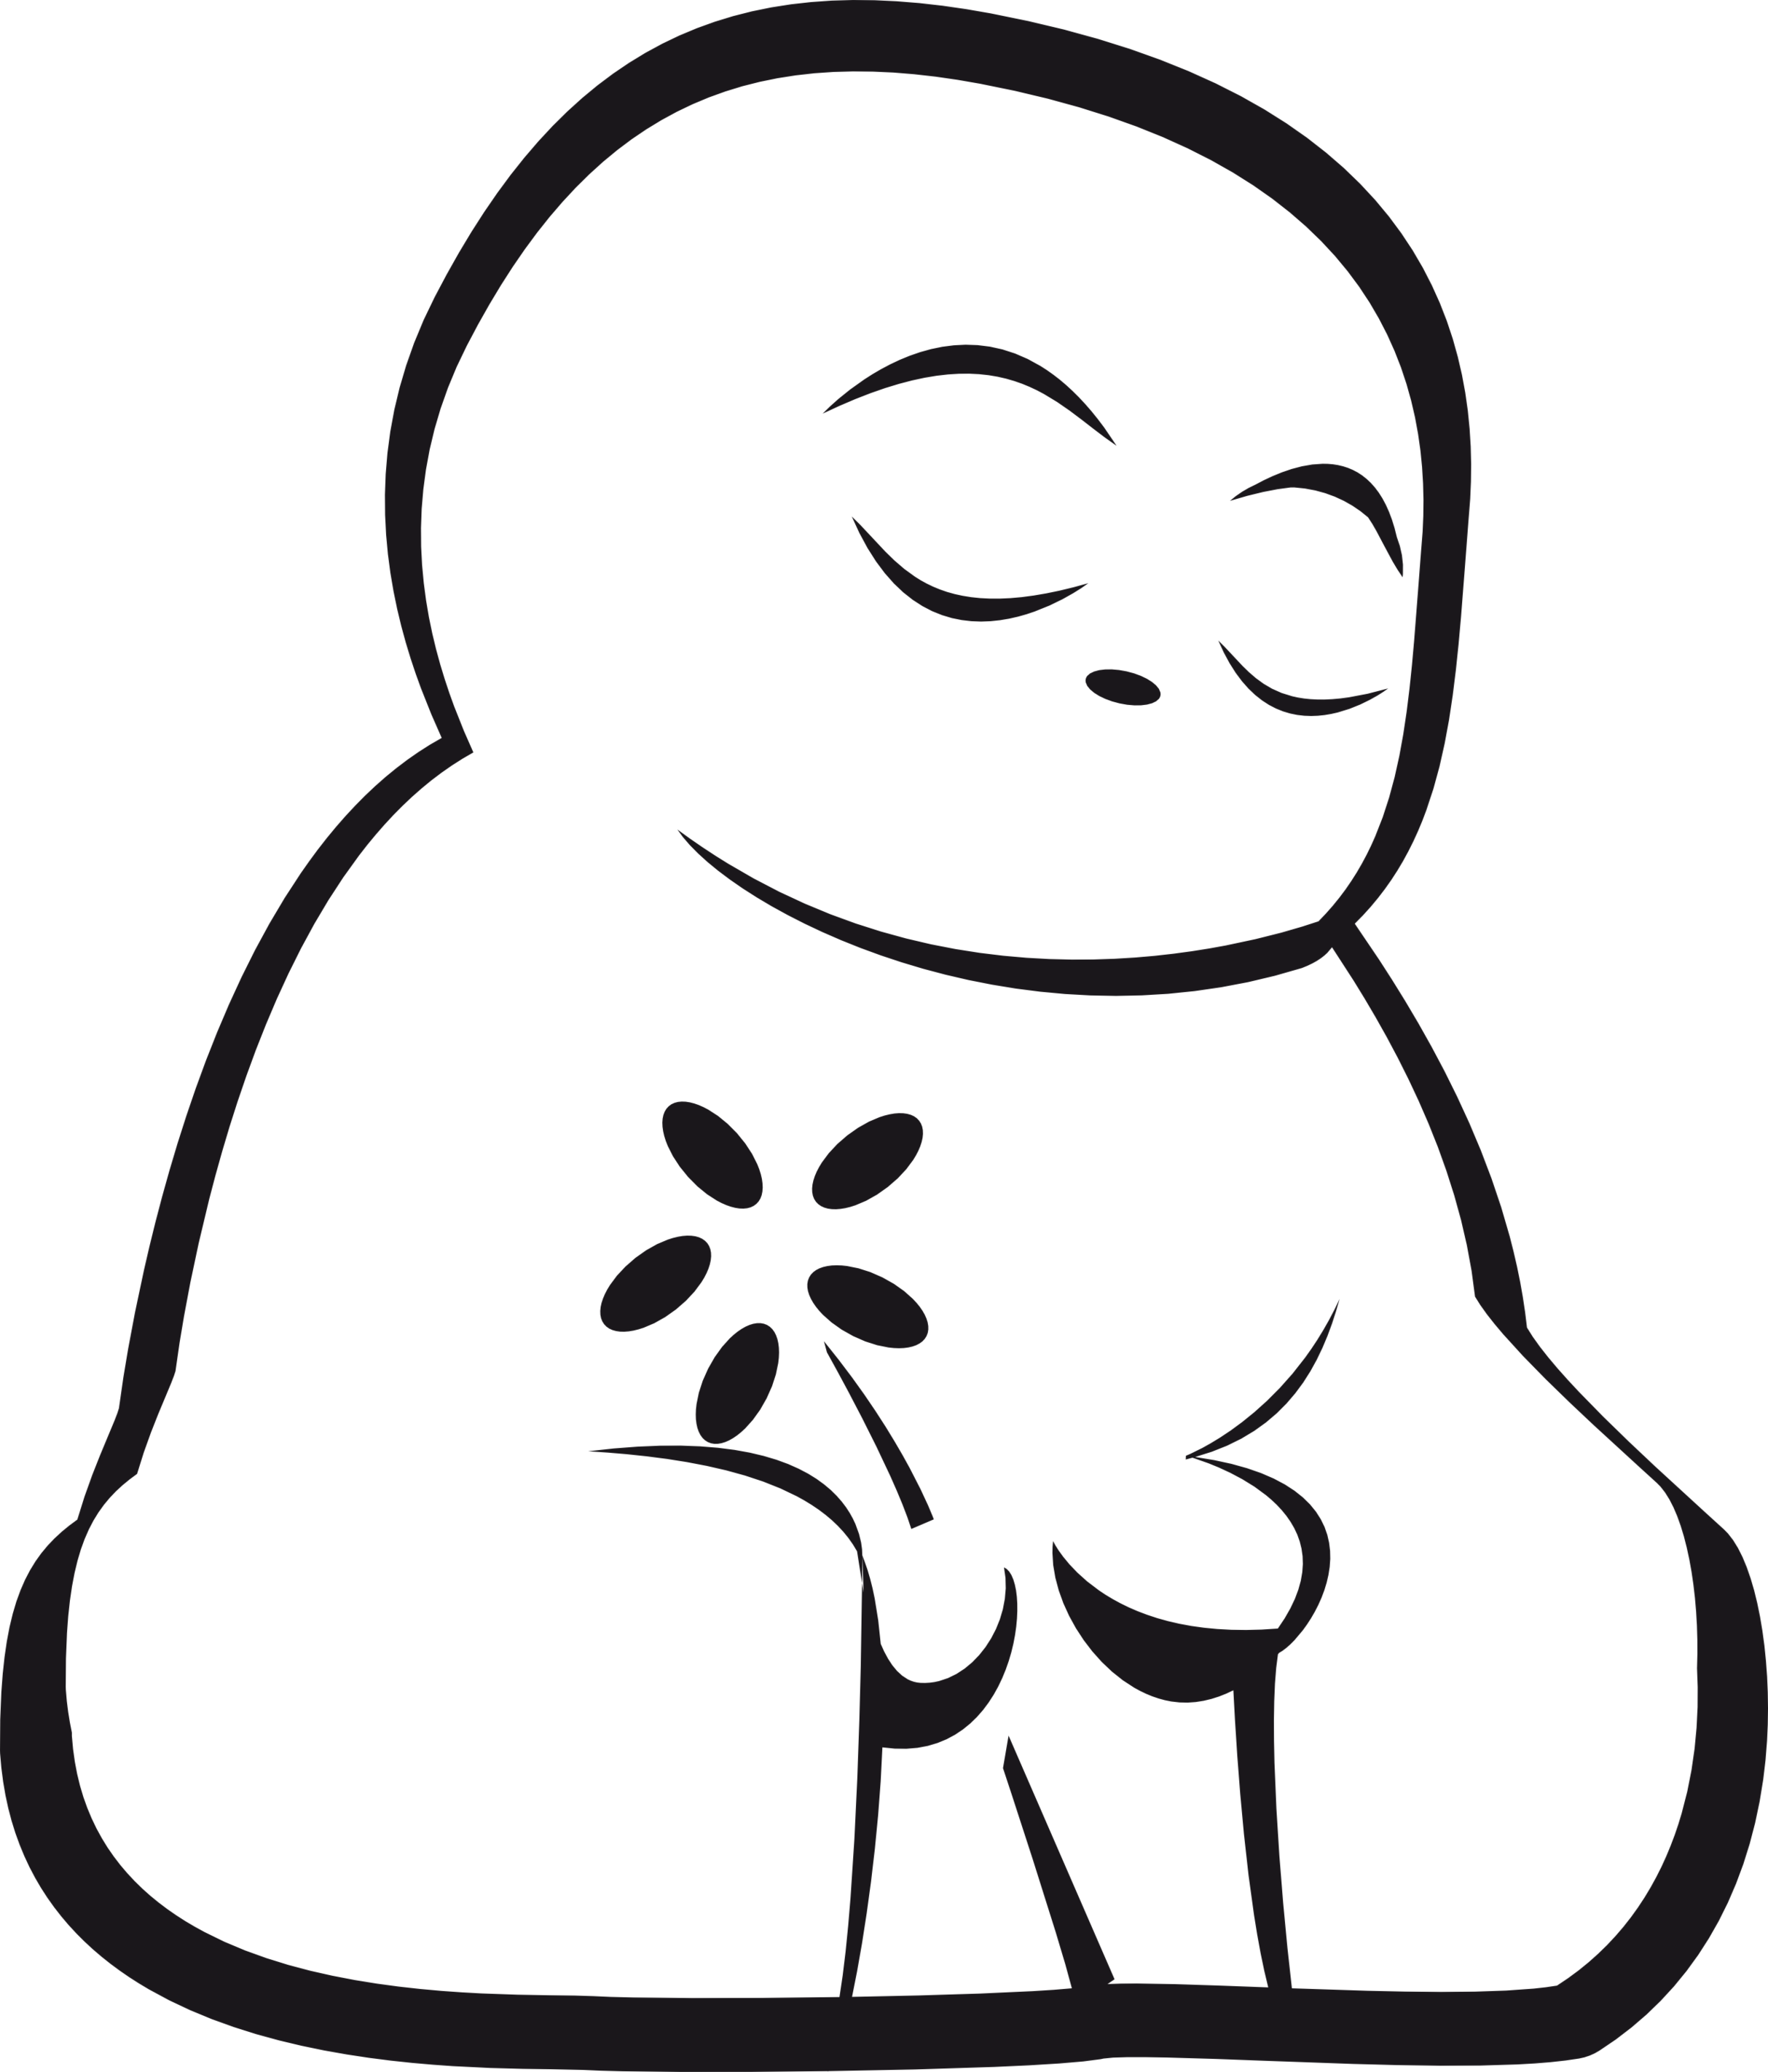 Buddha clipart cute. Free buddhism cliparts download